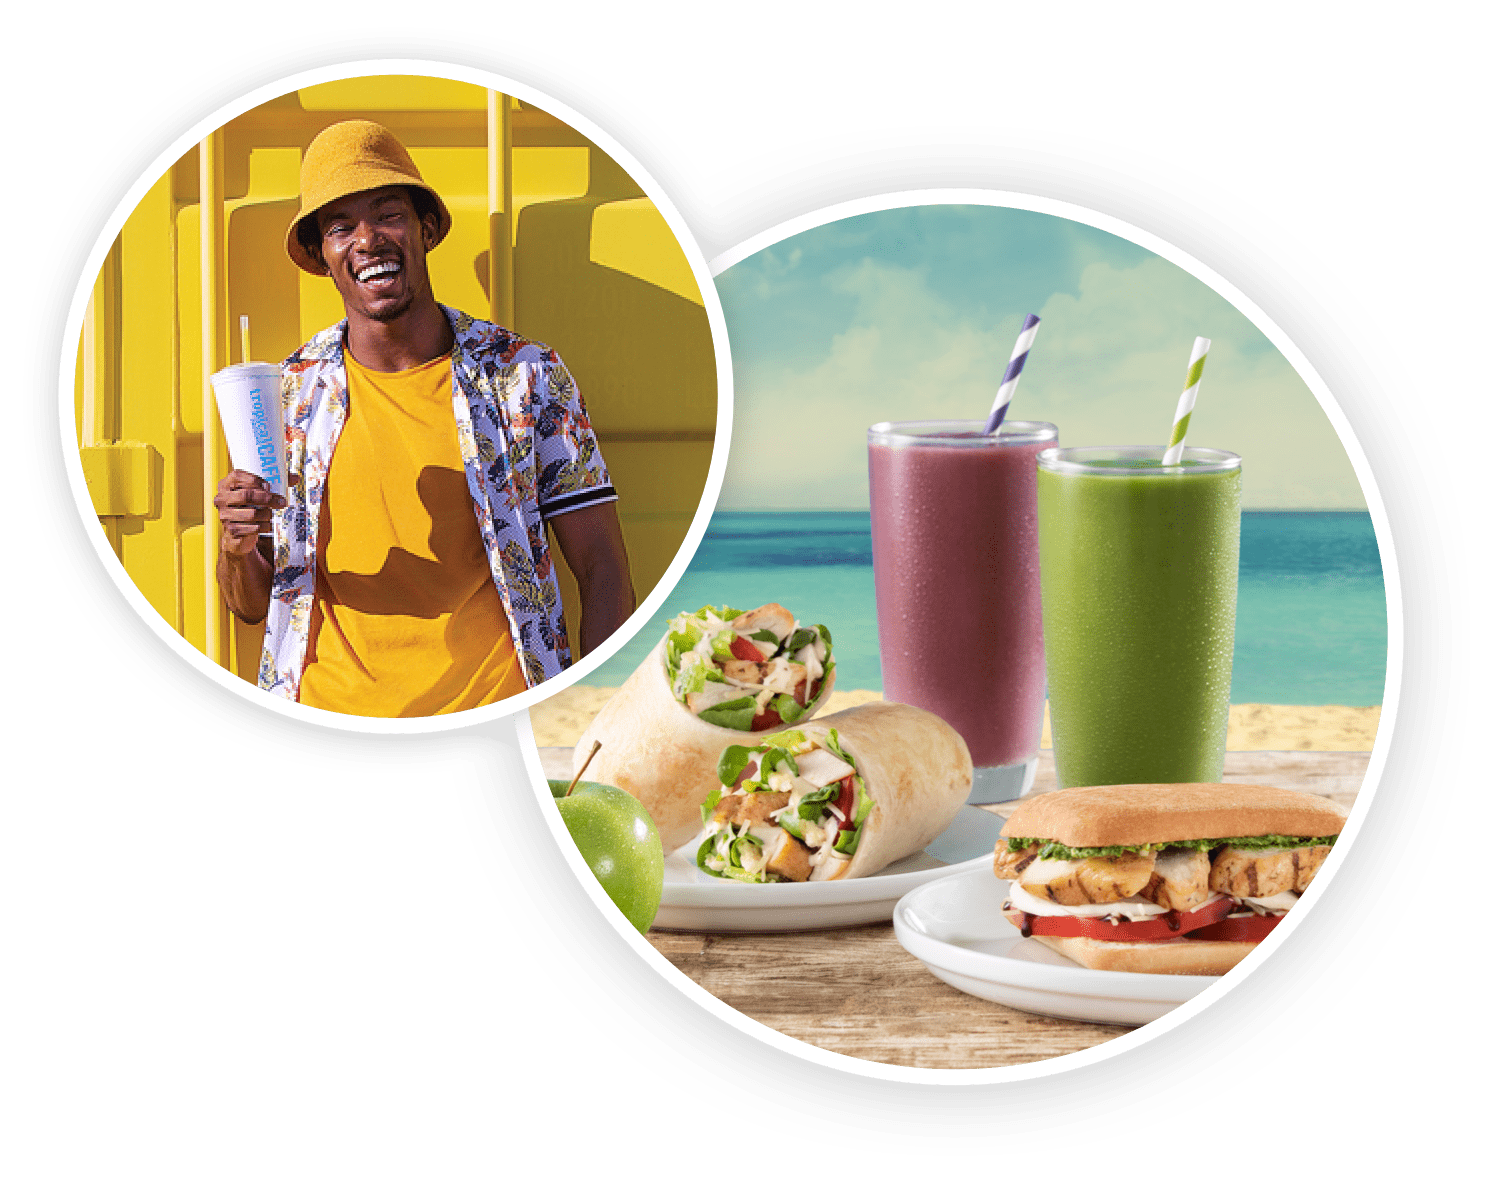 Happy guest with smoothies and food